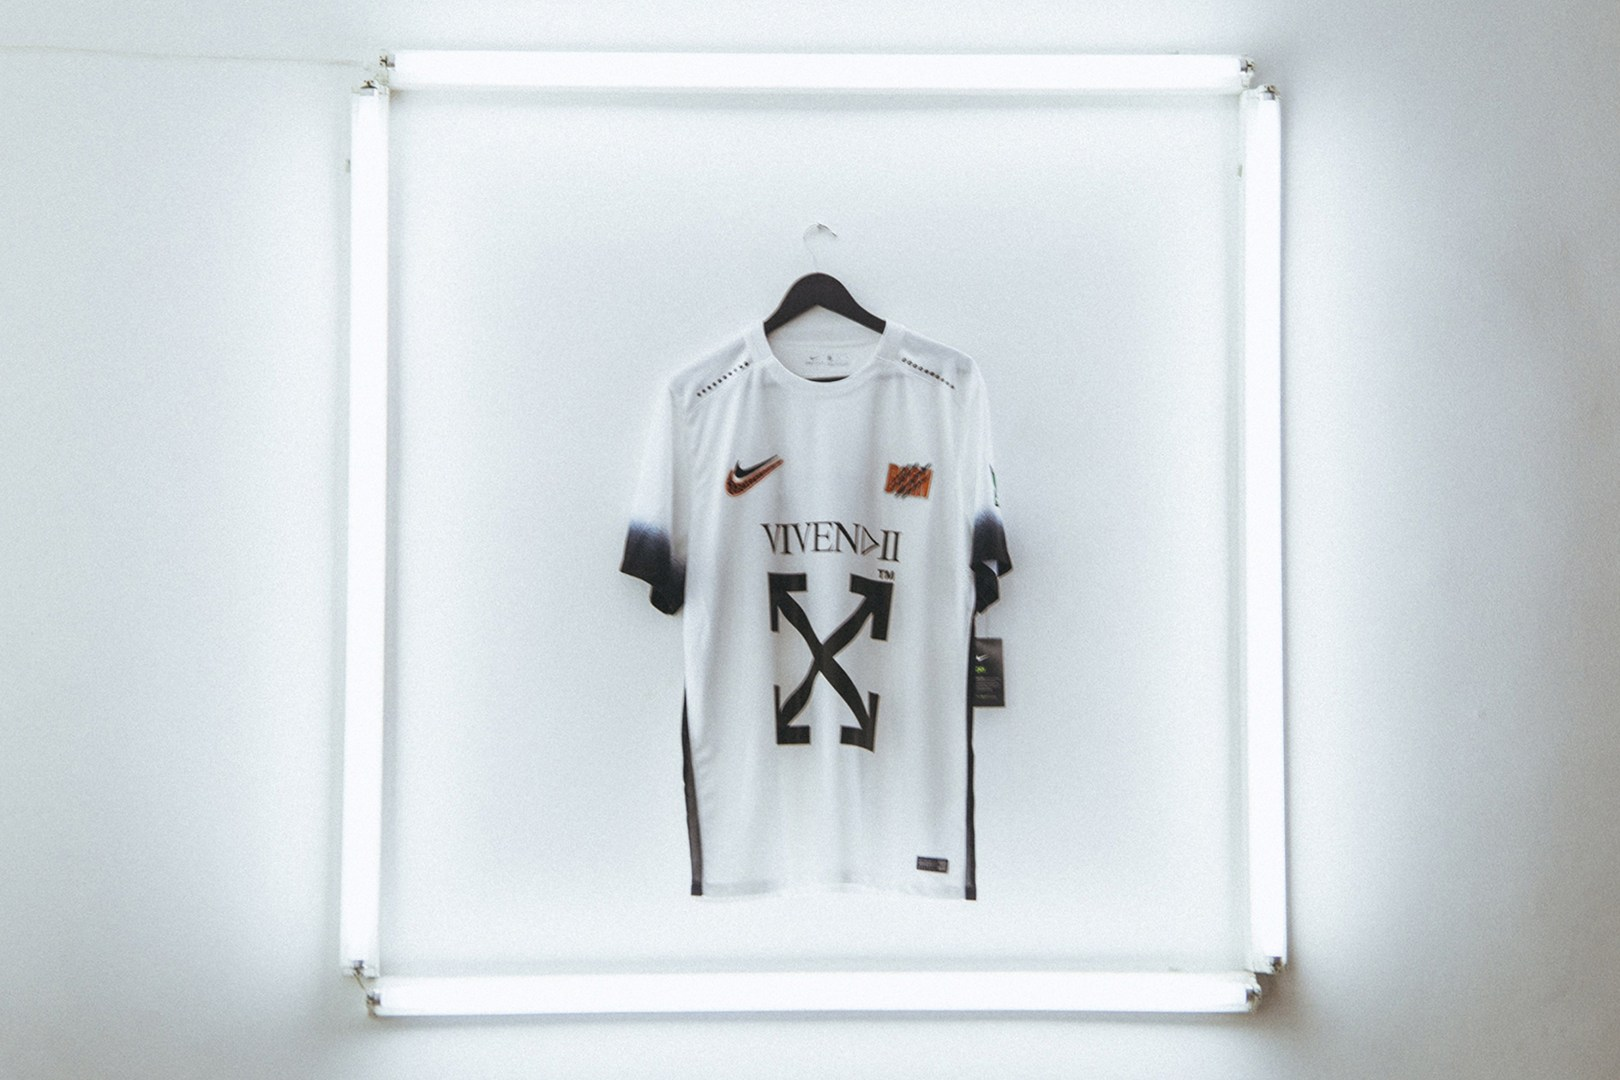 5c4f4354 Off-White and Vivendii Collaborate on a New Nigerian Soccer Kit